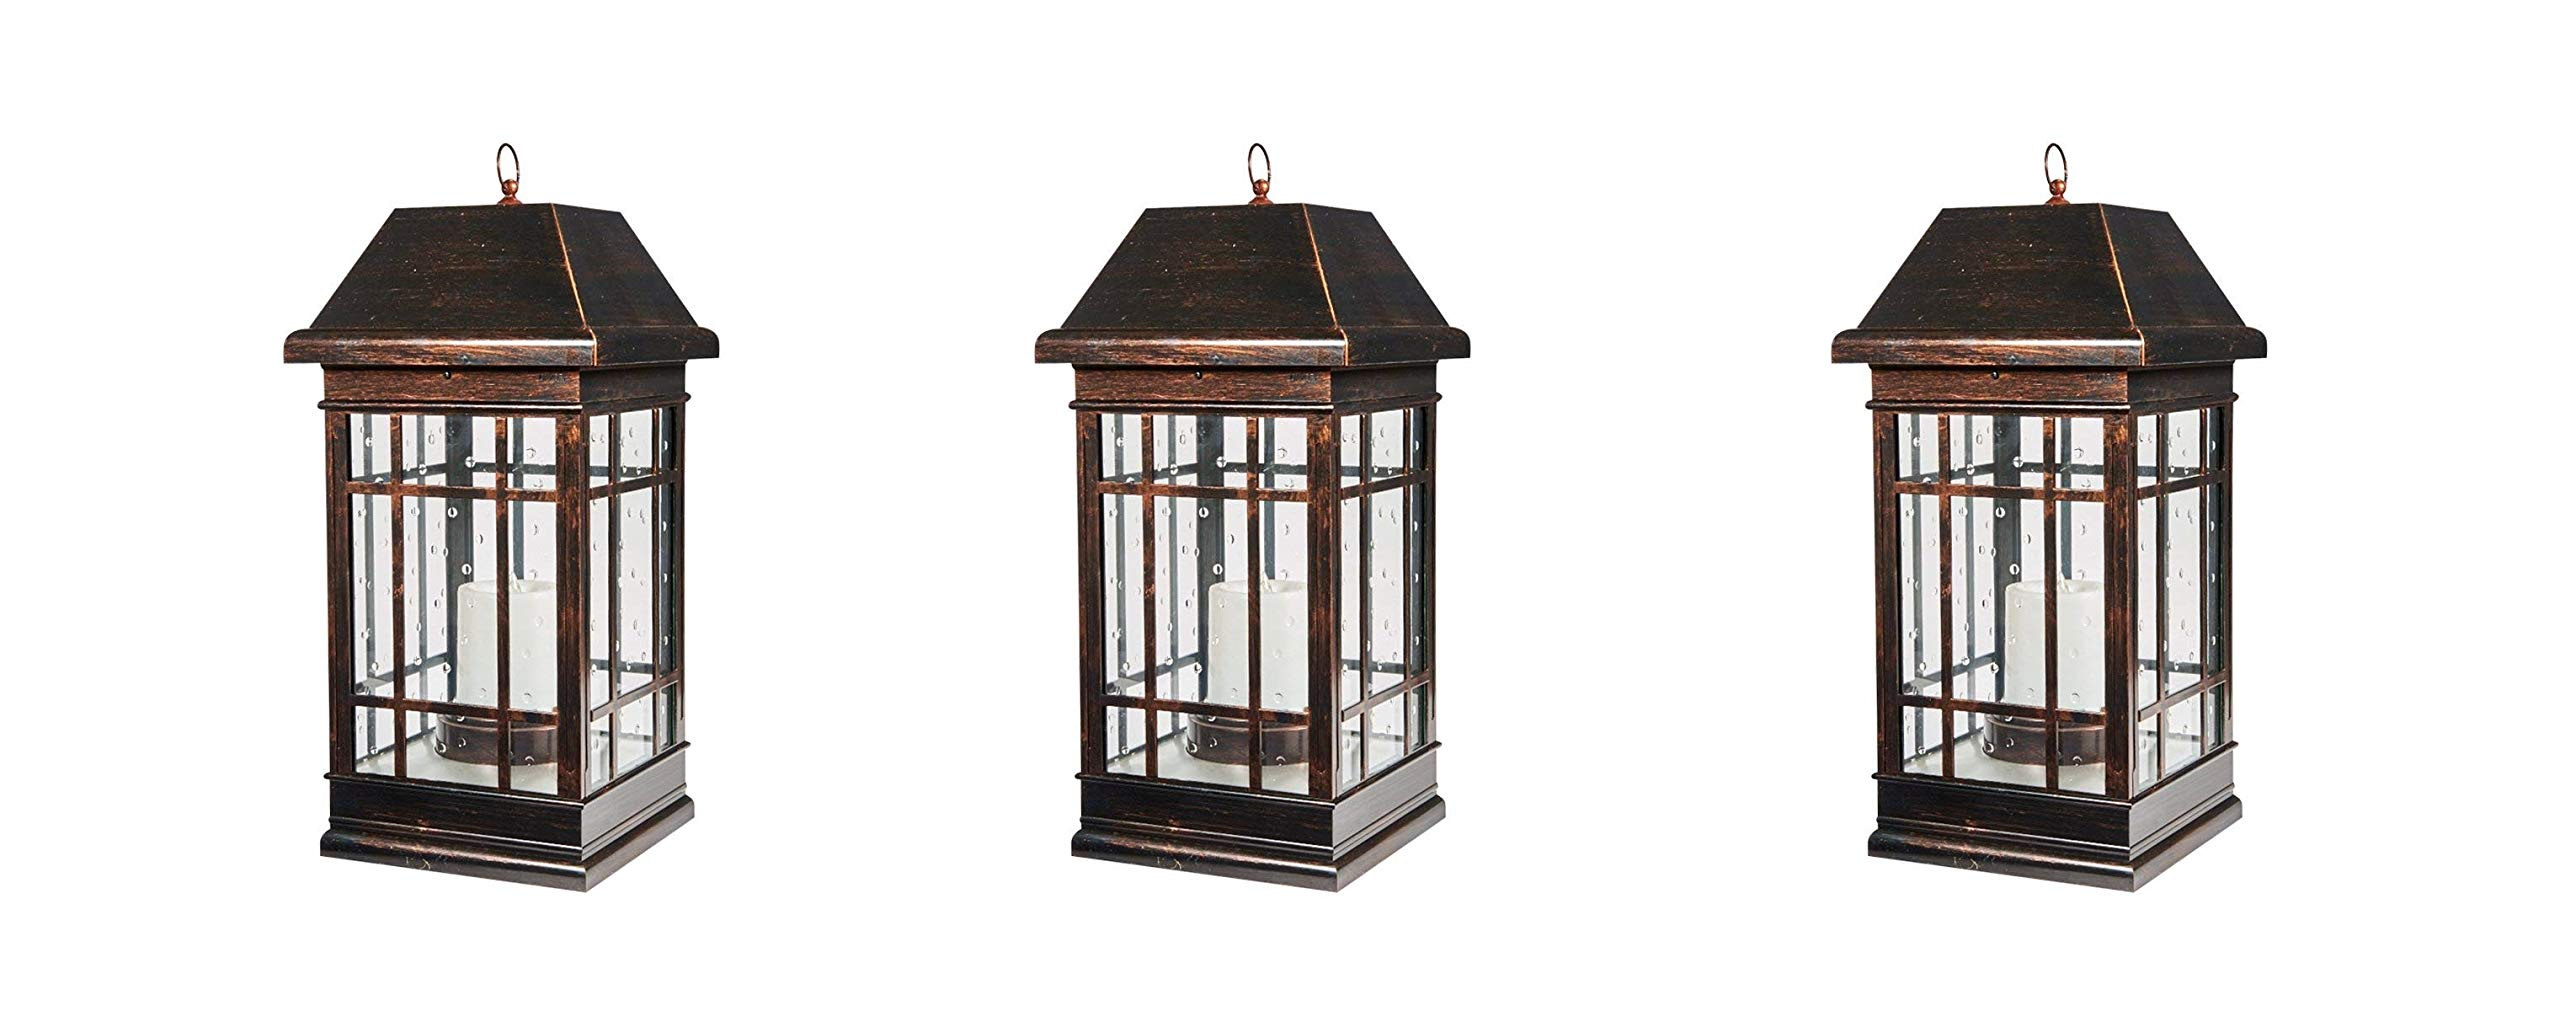 Smart Solar 3900KR1 San Rafael Mission Style Illuminated by 2 High Performance Warm White LEDs in The Top Solar Powered Lantern, 22-Inch, Antique-Bronze (Pack of 3)